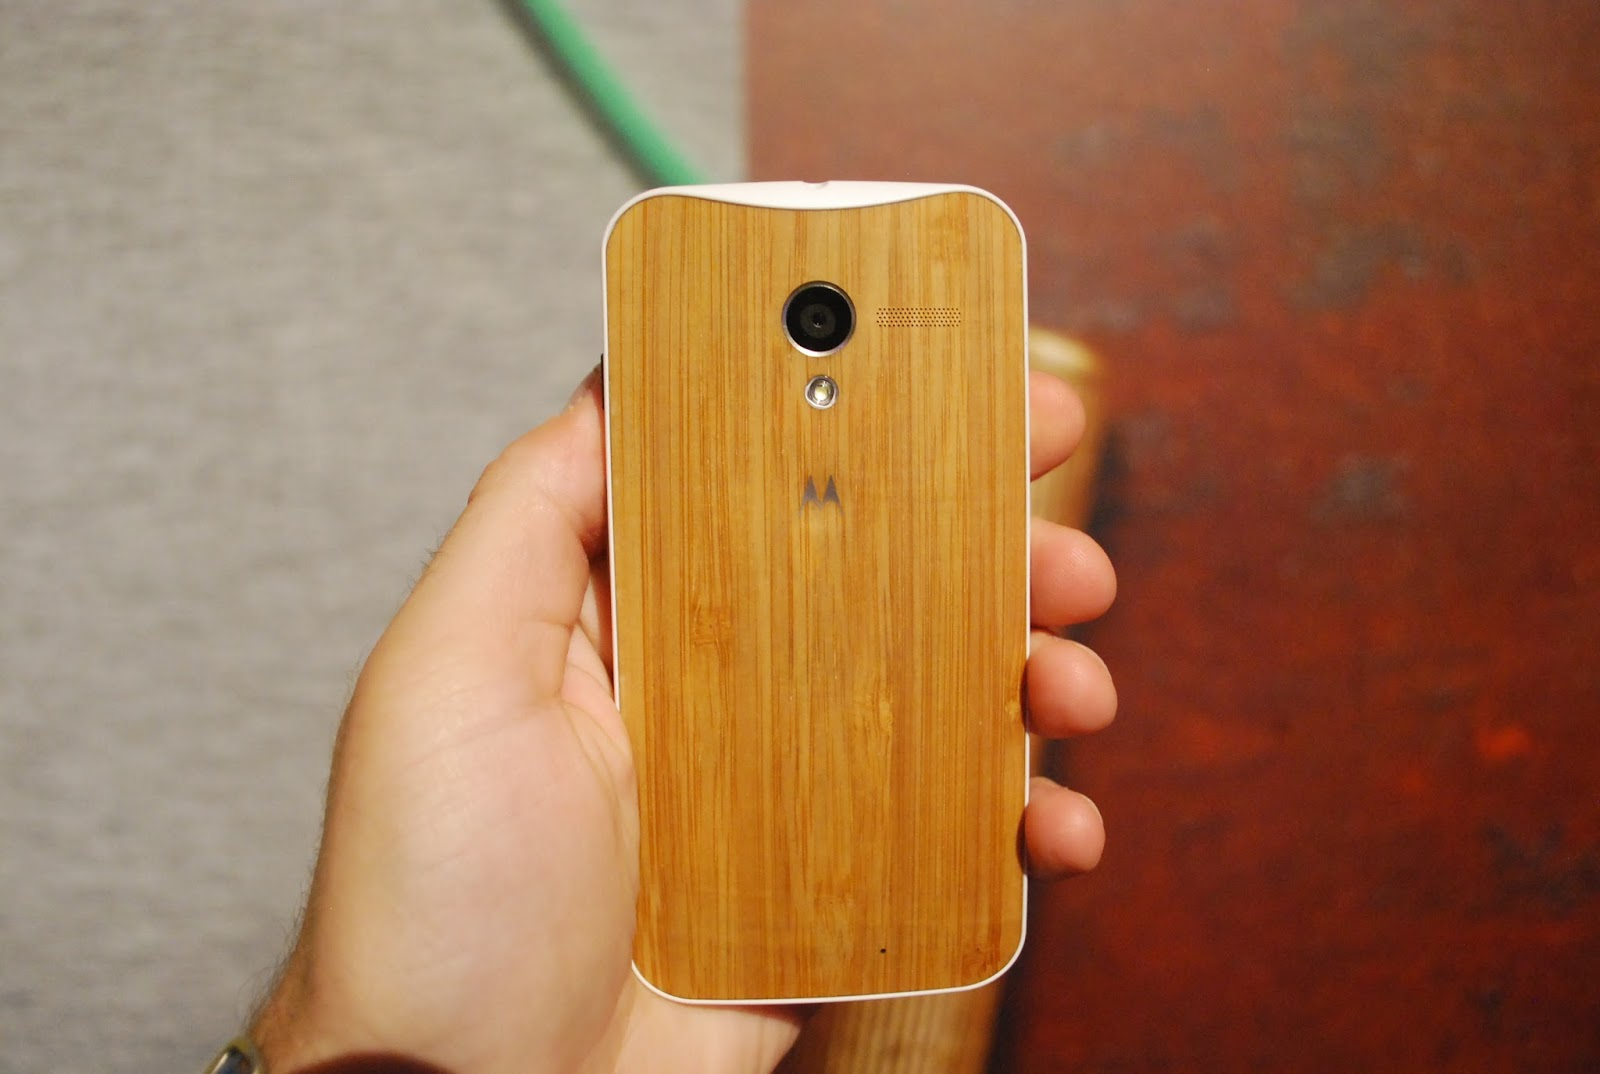 Moto X smartphone by Google will be available in the U.S. in late August or early September. It will be sold 199 dollars with a two-year subscription